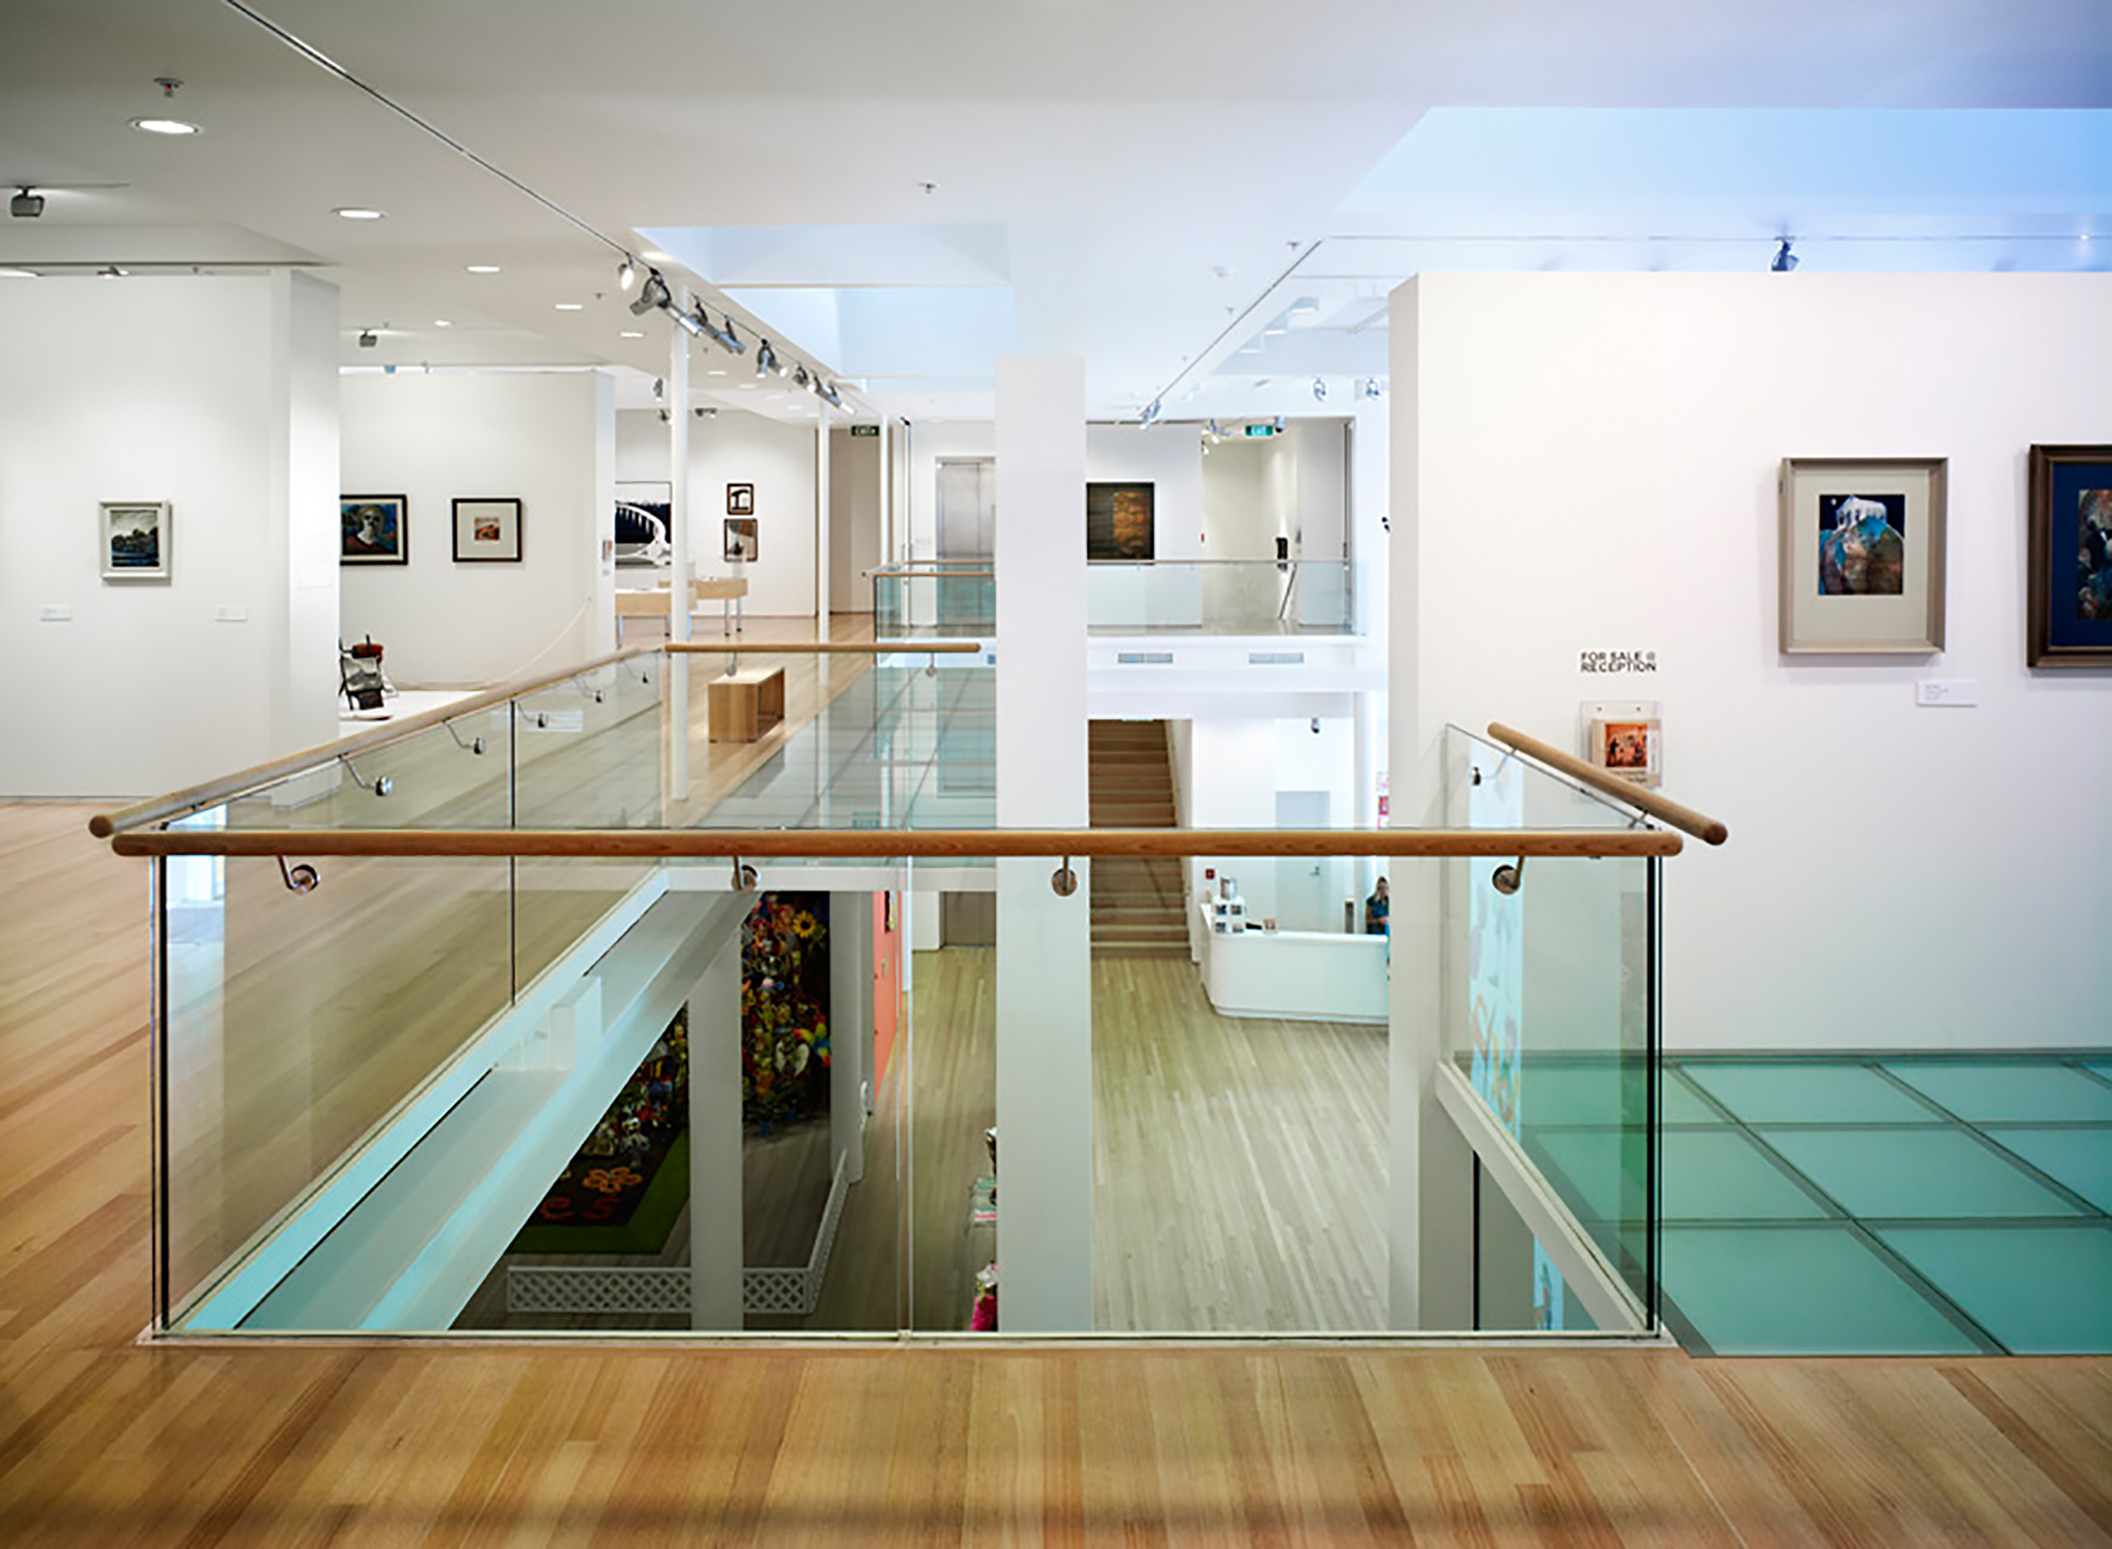 Tauranga Art Gallery Mitchell & Stout Architects 6.jpg